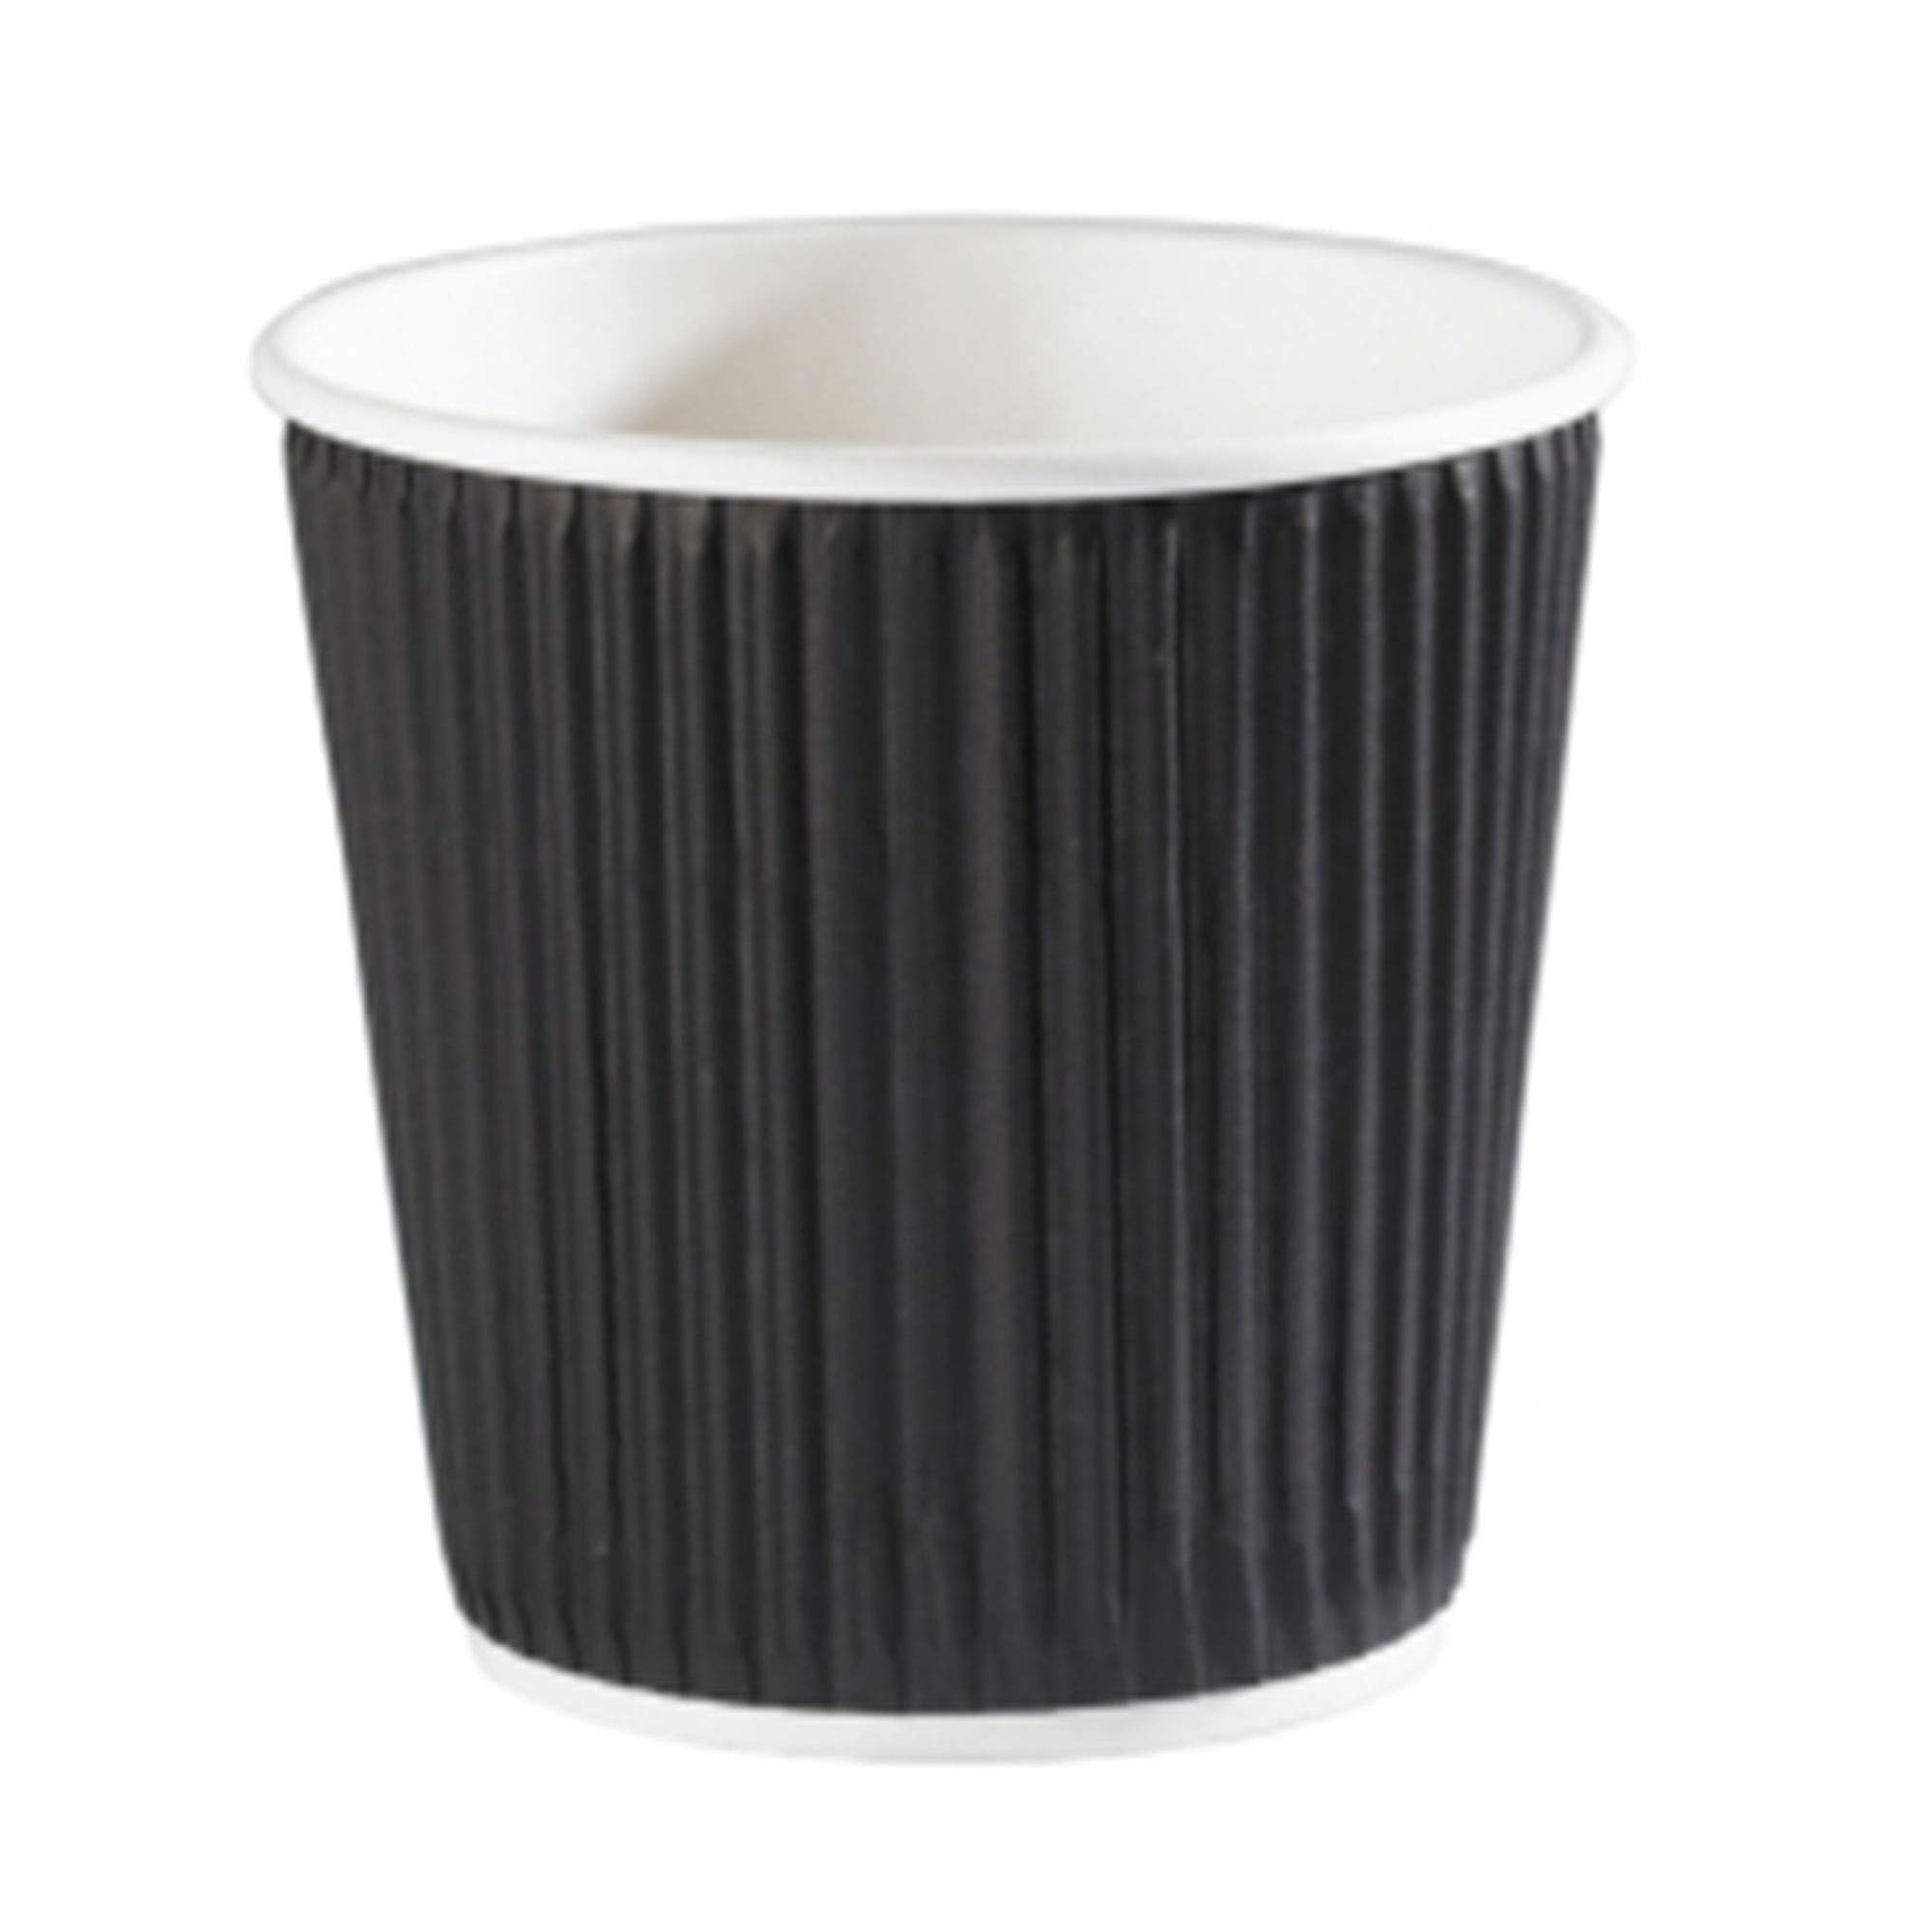 UK MANUFACTURER 50 x 8oz BLACK 3-PLY RIPPLE PAPER COFFEE CUPS